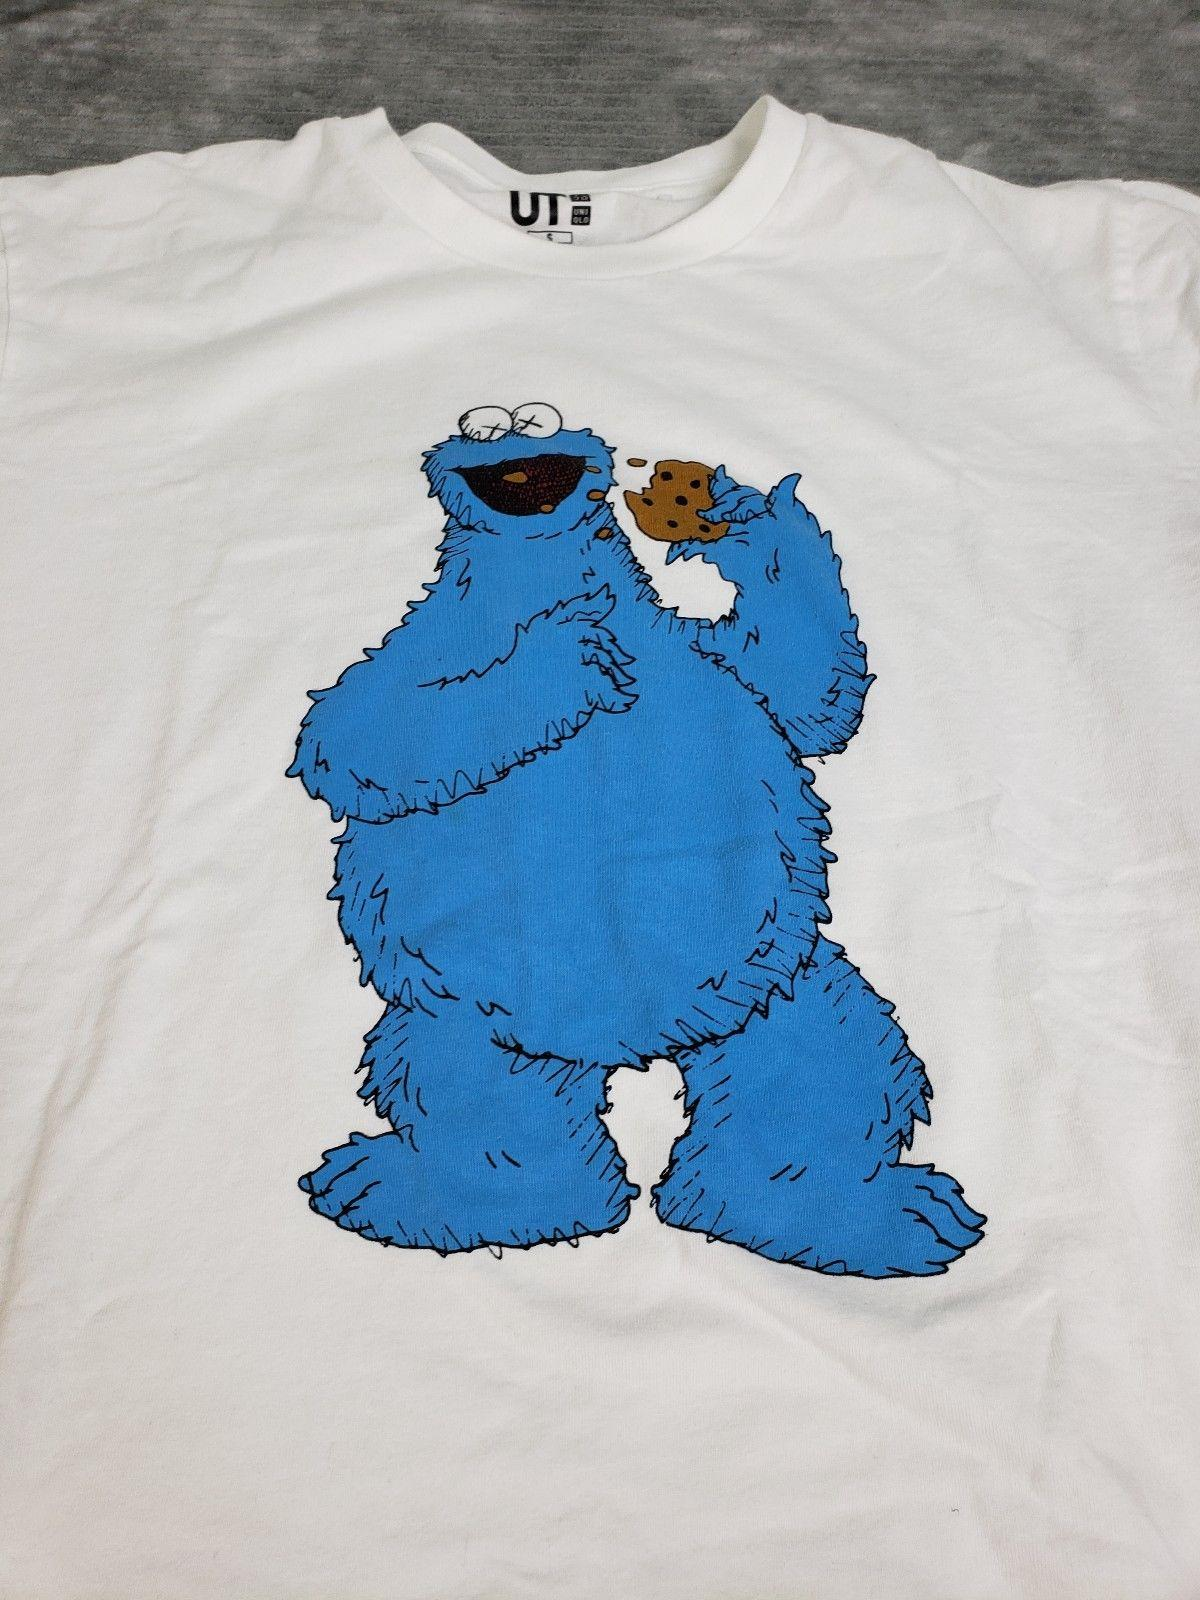 55c080f271a Details Zu UNIQLO KAWS X SESAME STREET T SHIRT COOKIE MONSTER WHITE Sz S  Guc Unisex Funny T Shirt Slogans Dirty T Shirts From Lukehappy12